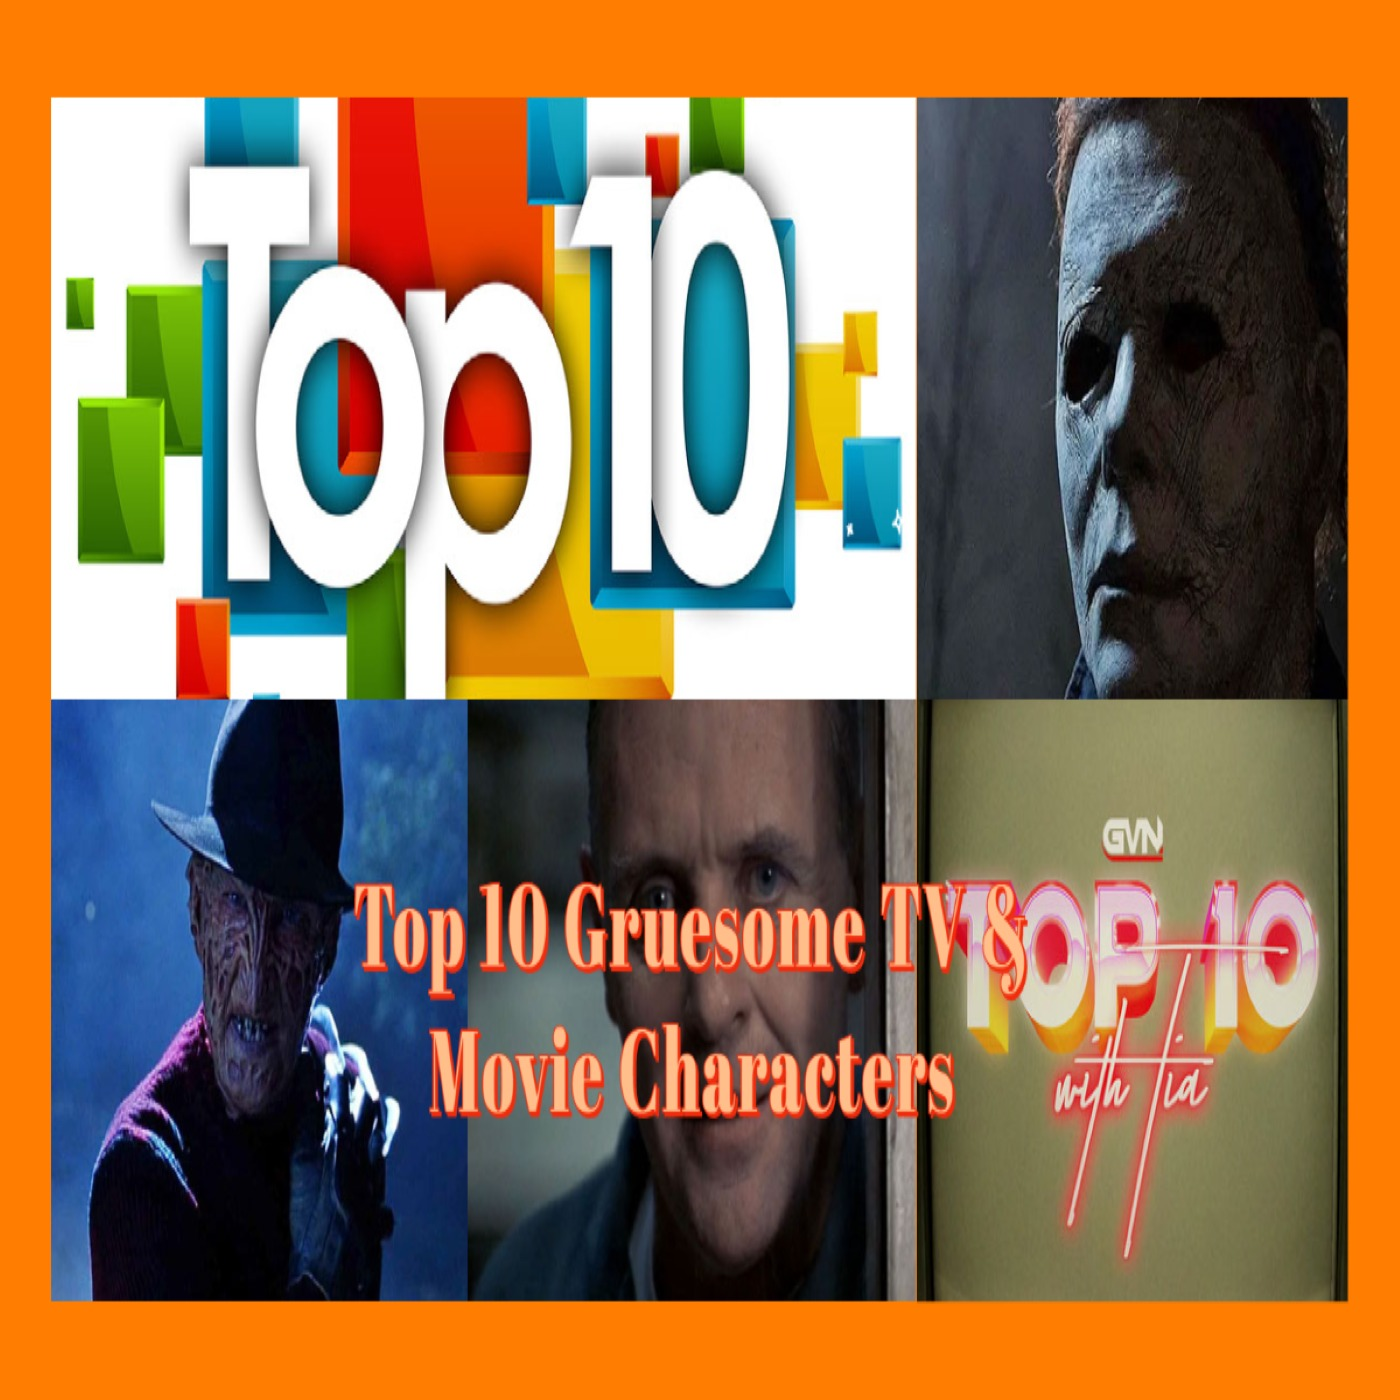 Top 10 Gruesome TV and Movie Characters